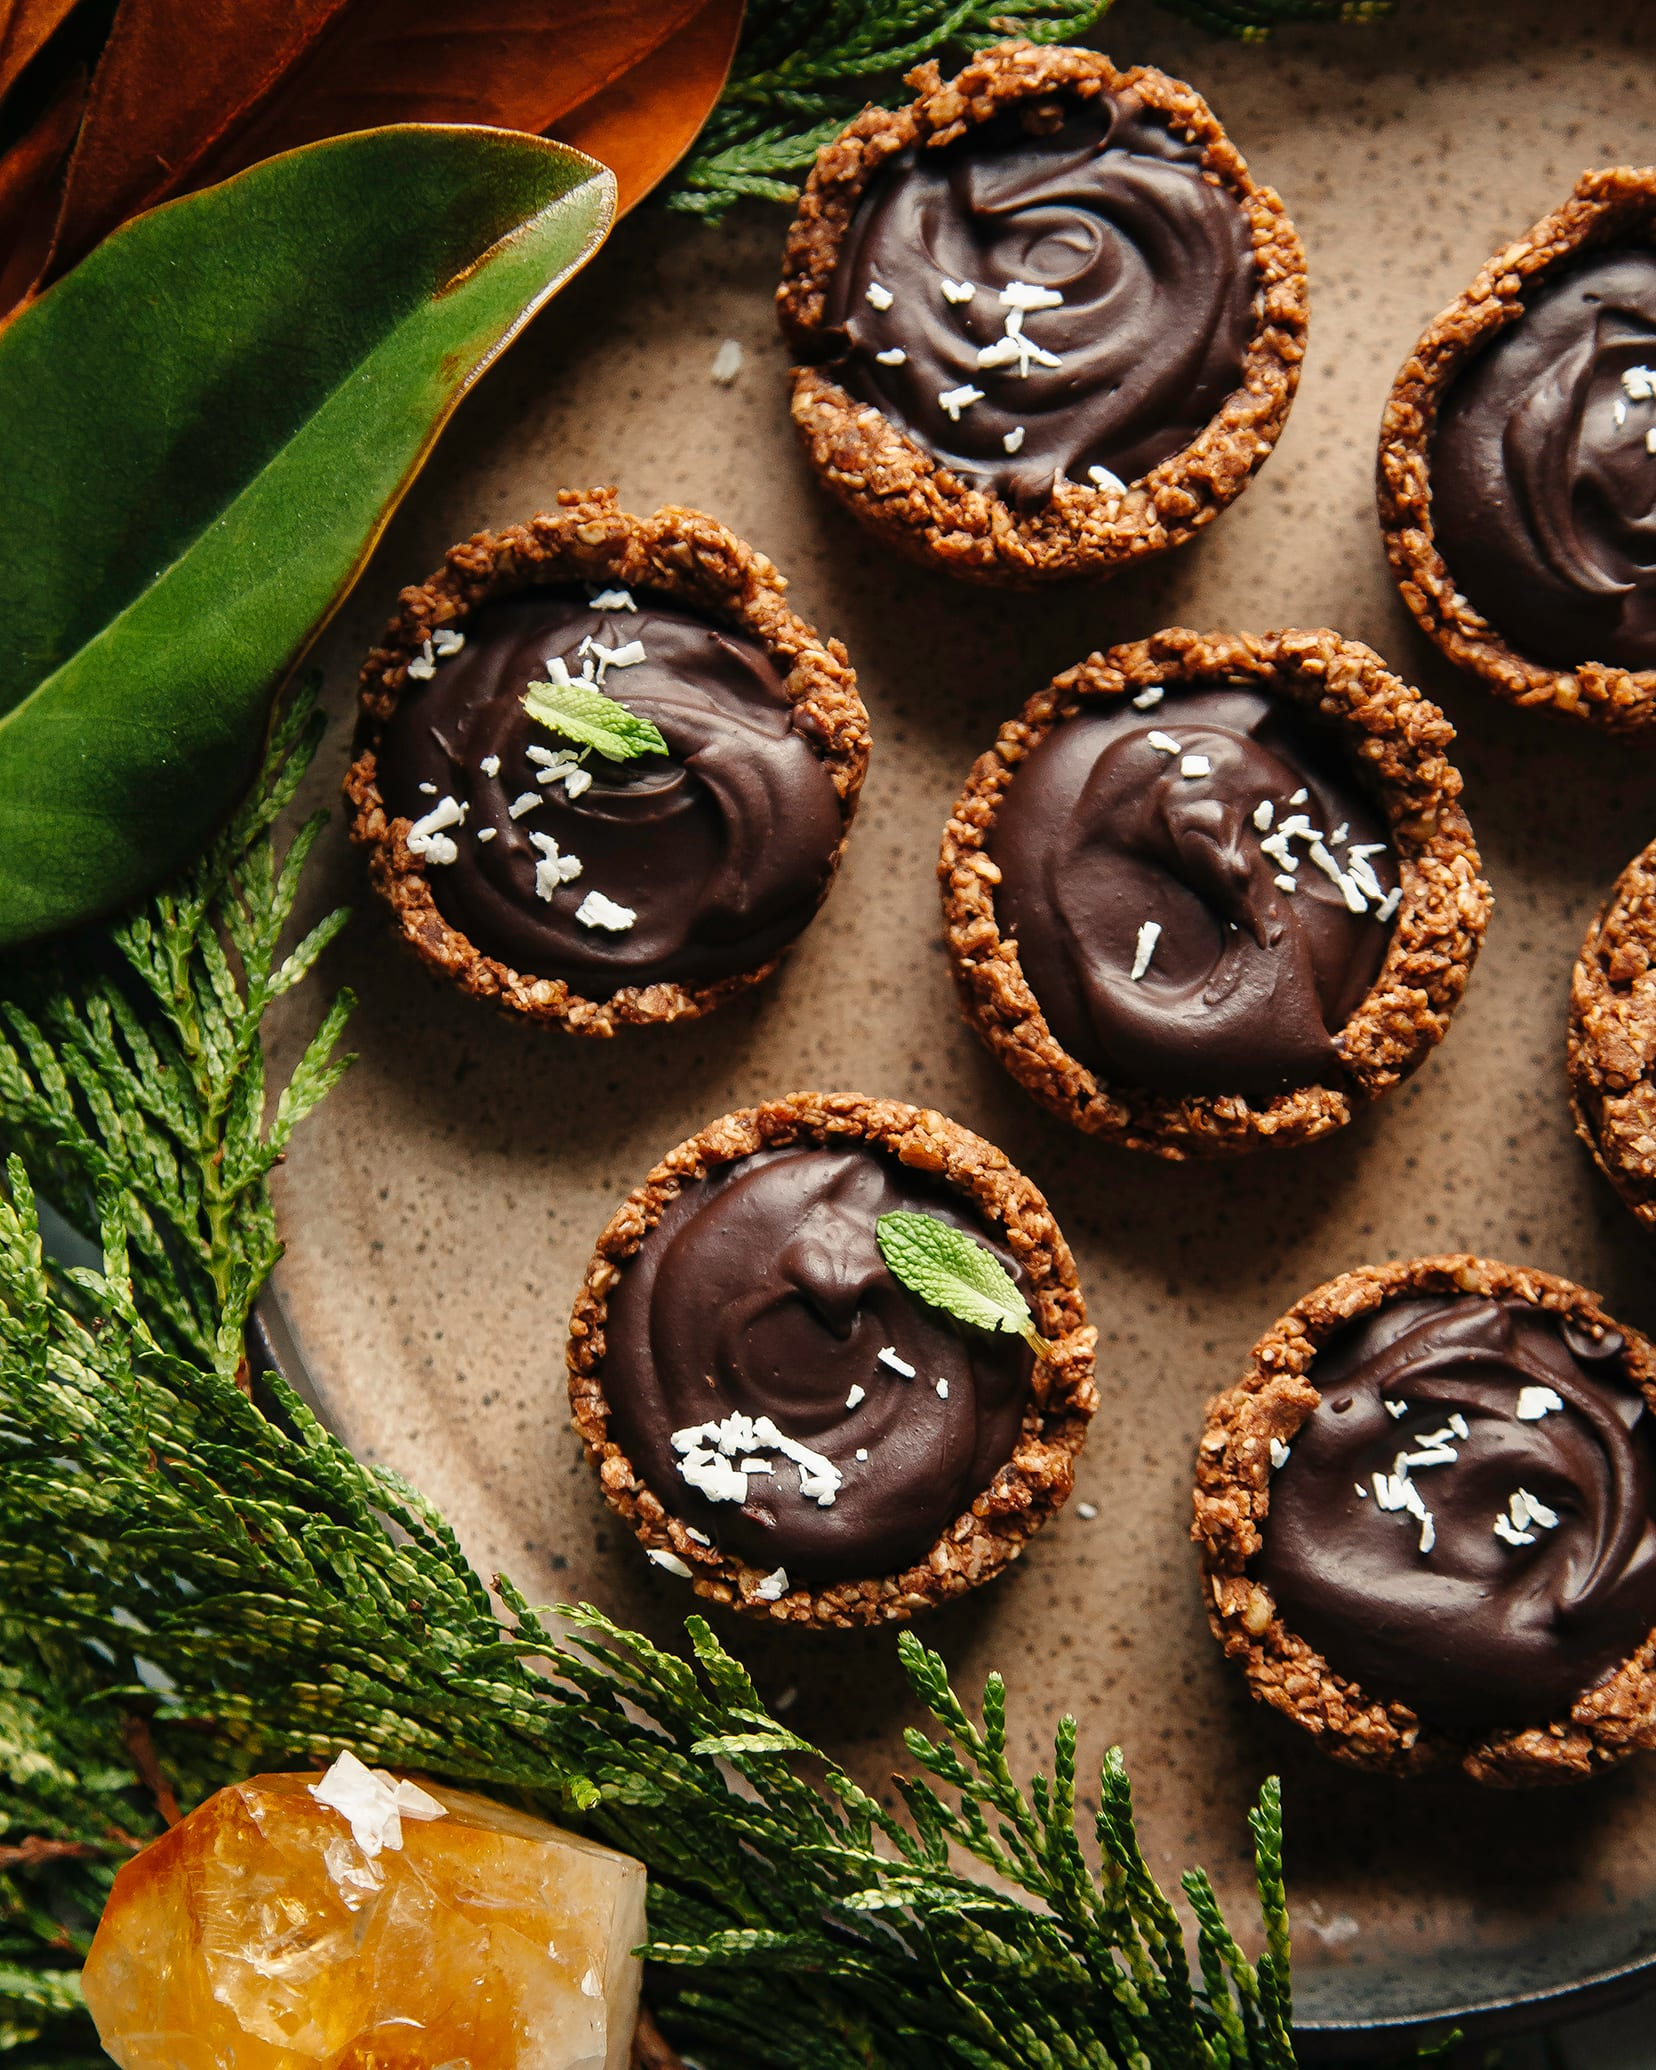 An overhead shot of chocolate ganache cups on a brown plate.